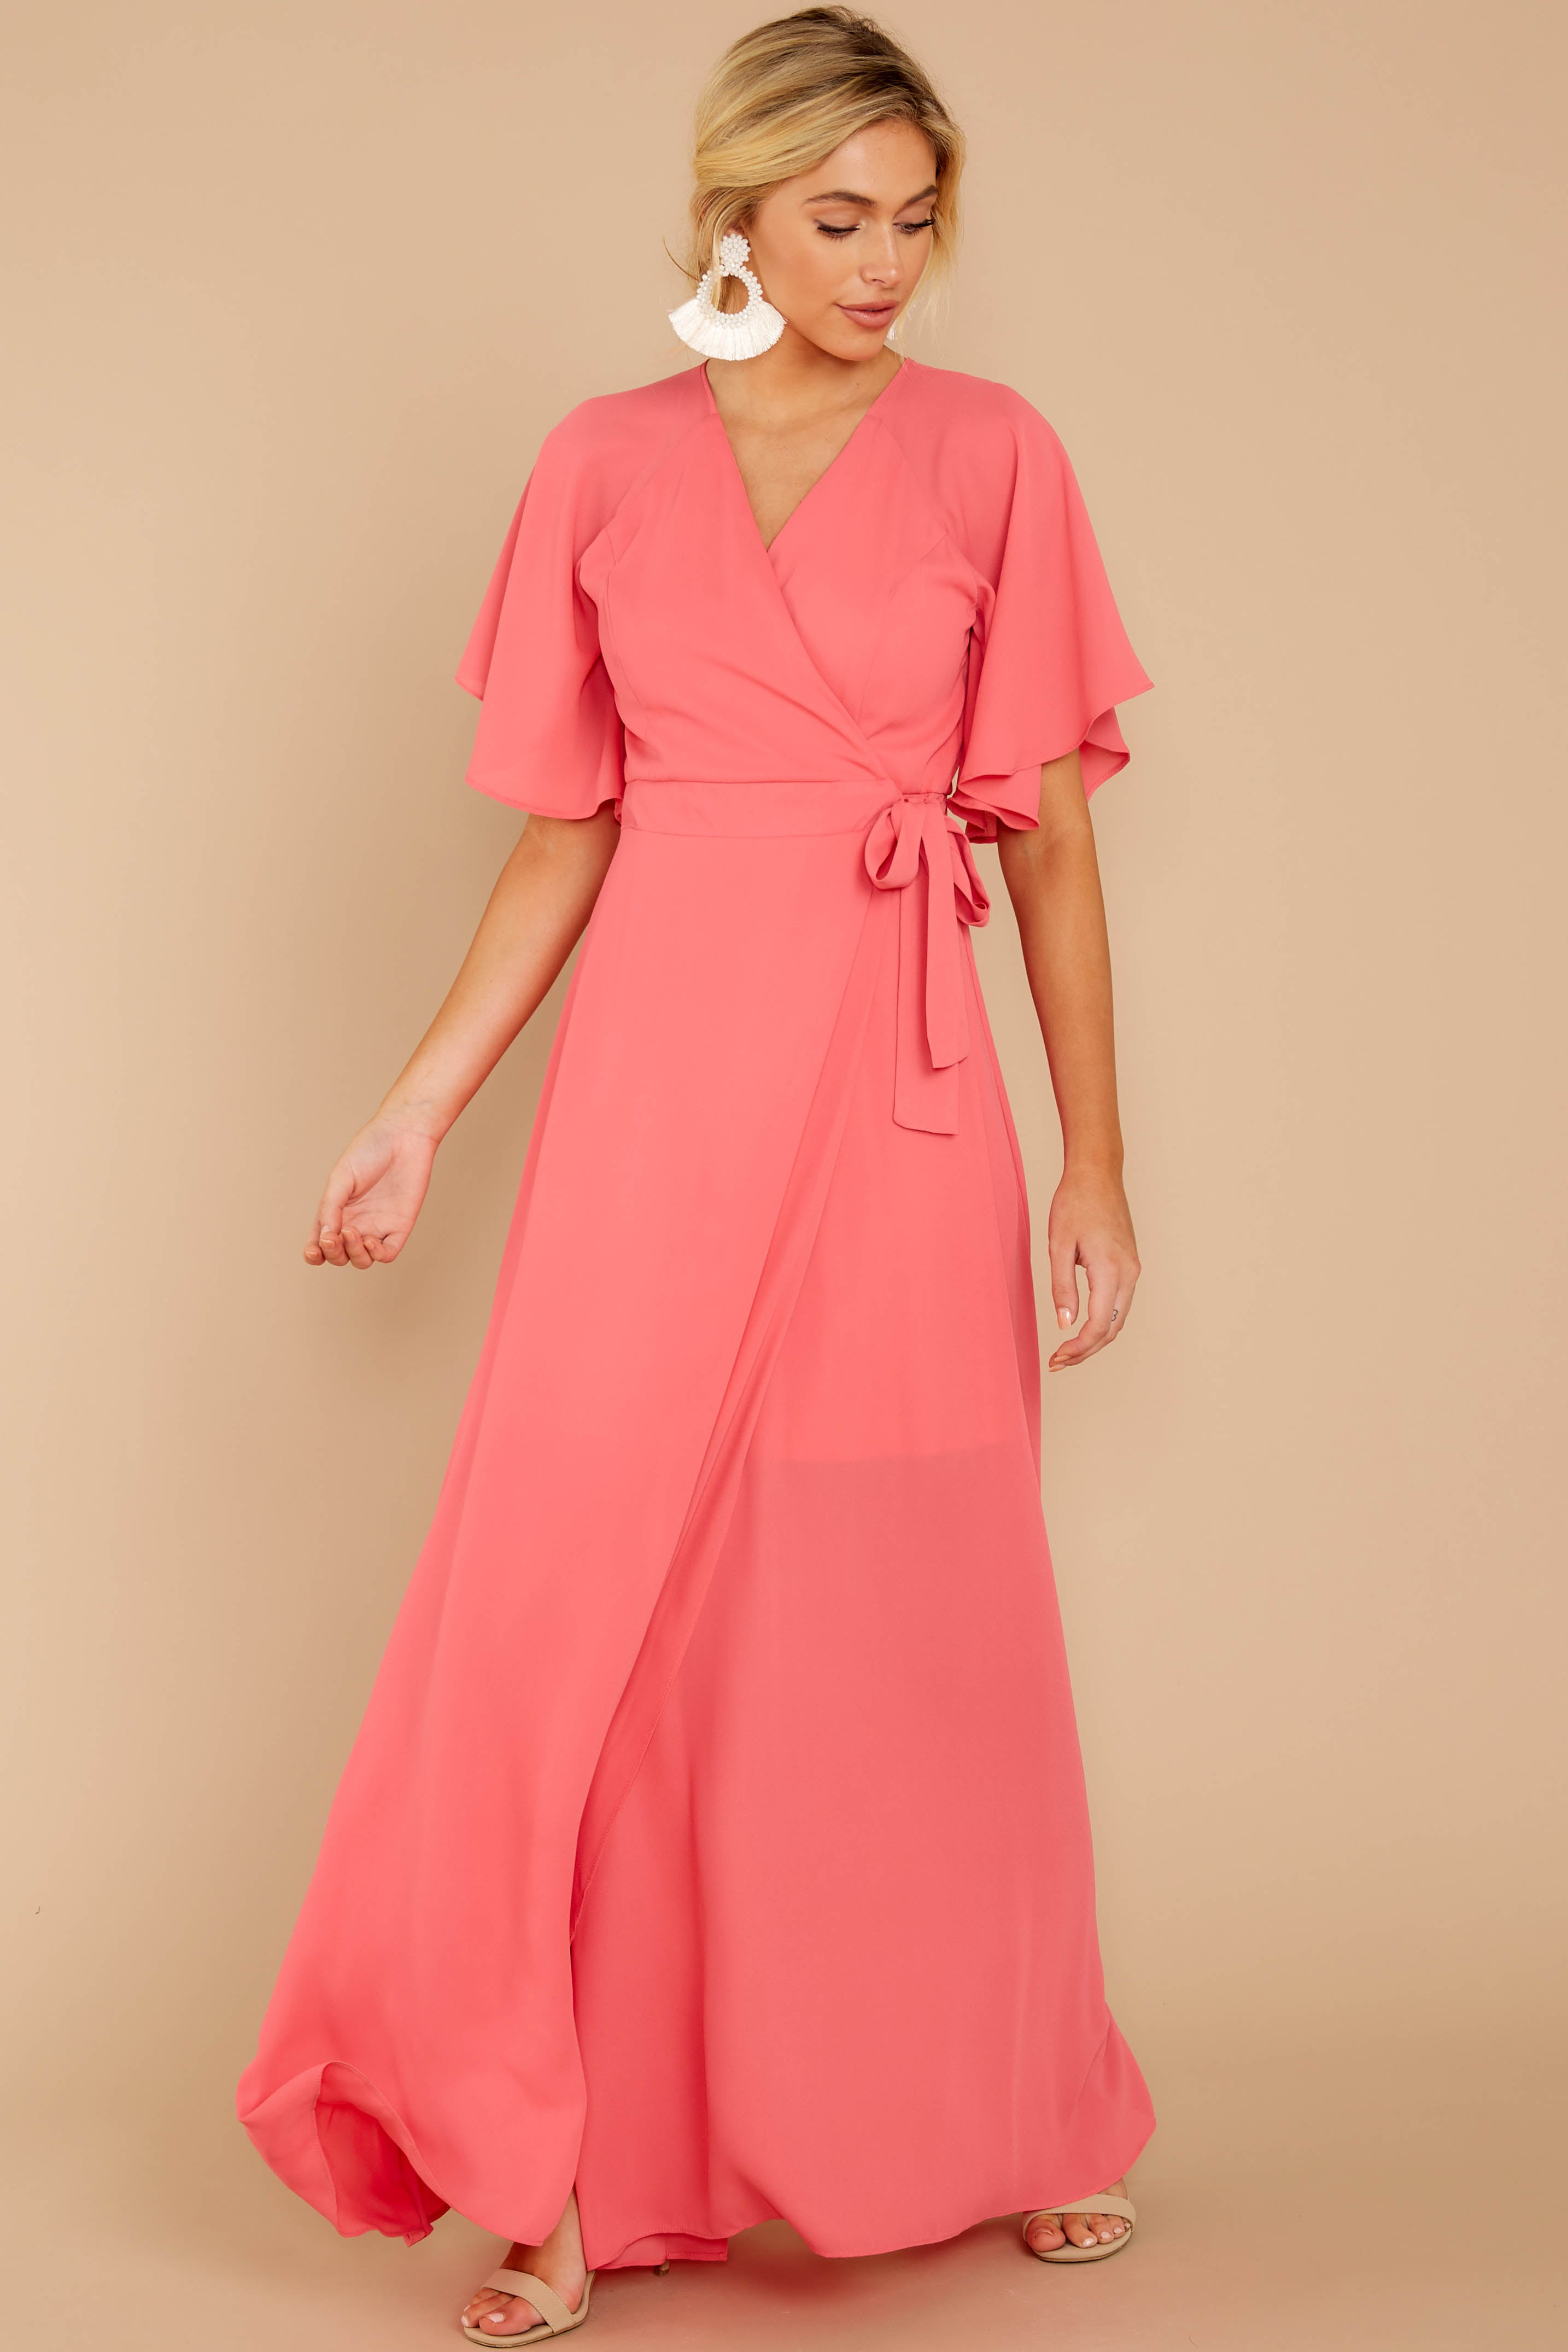 1 Wrapped In Elegance Flamingo Pink Maxi Dress at reddress.com